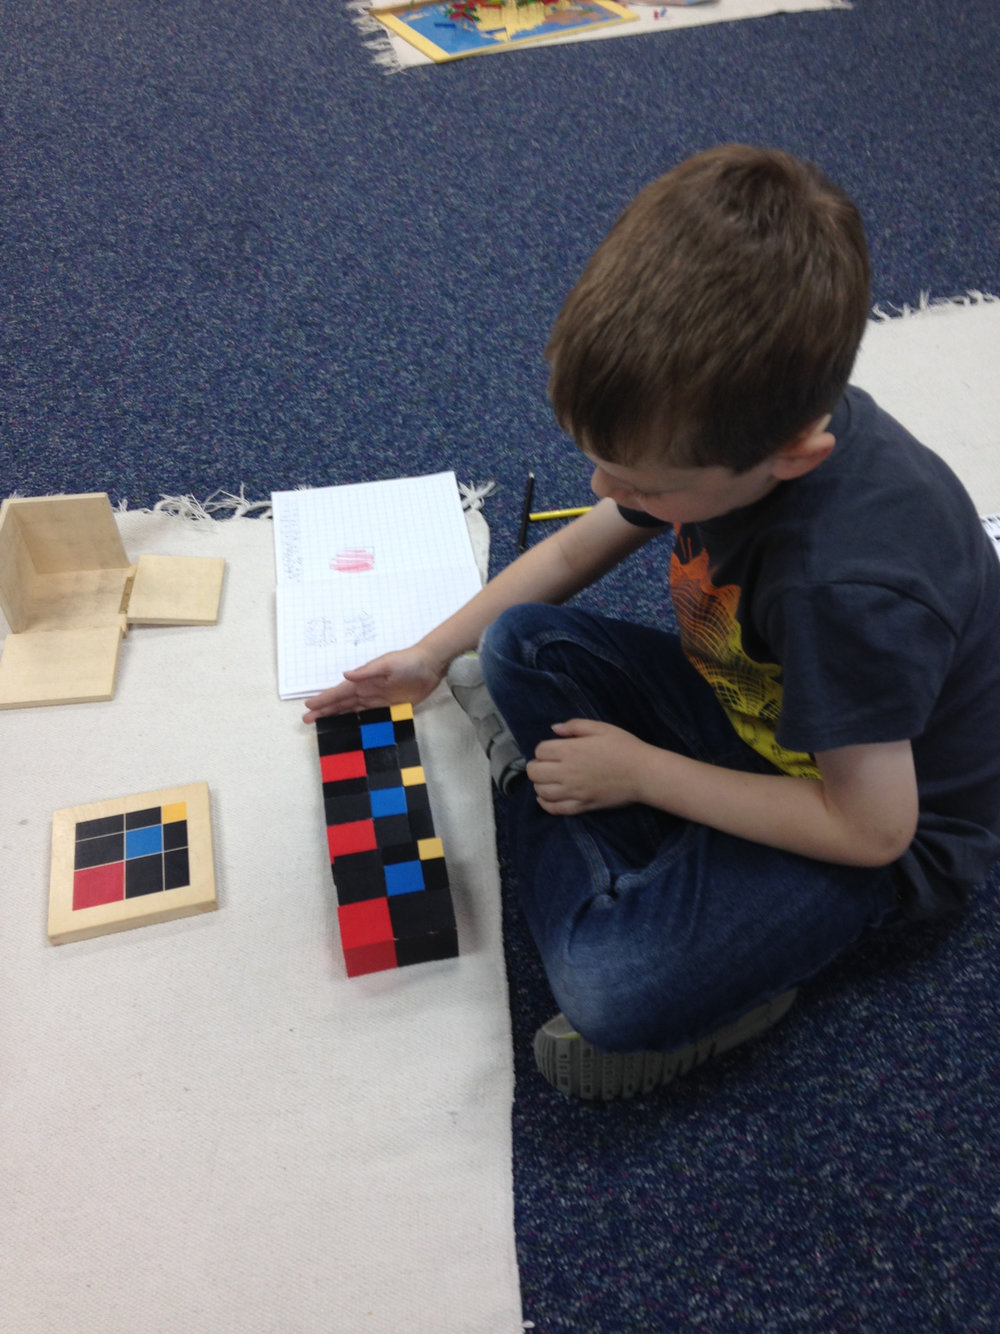 There are endless ways for students to explore the Trinomial Cube material, which is used in different ways at many levels in Montessori classrooms.  A Lower Elementary West student created a pattern independently.